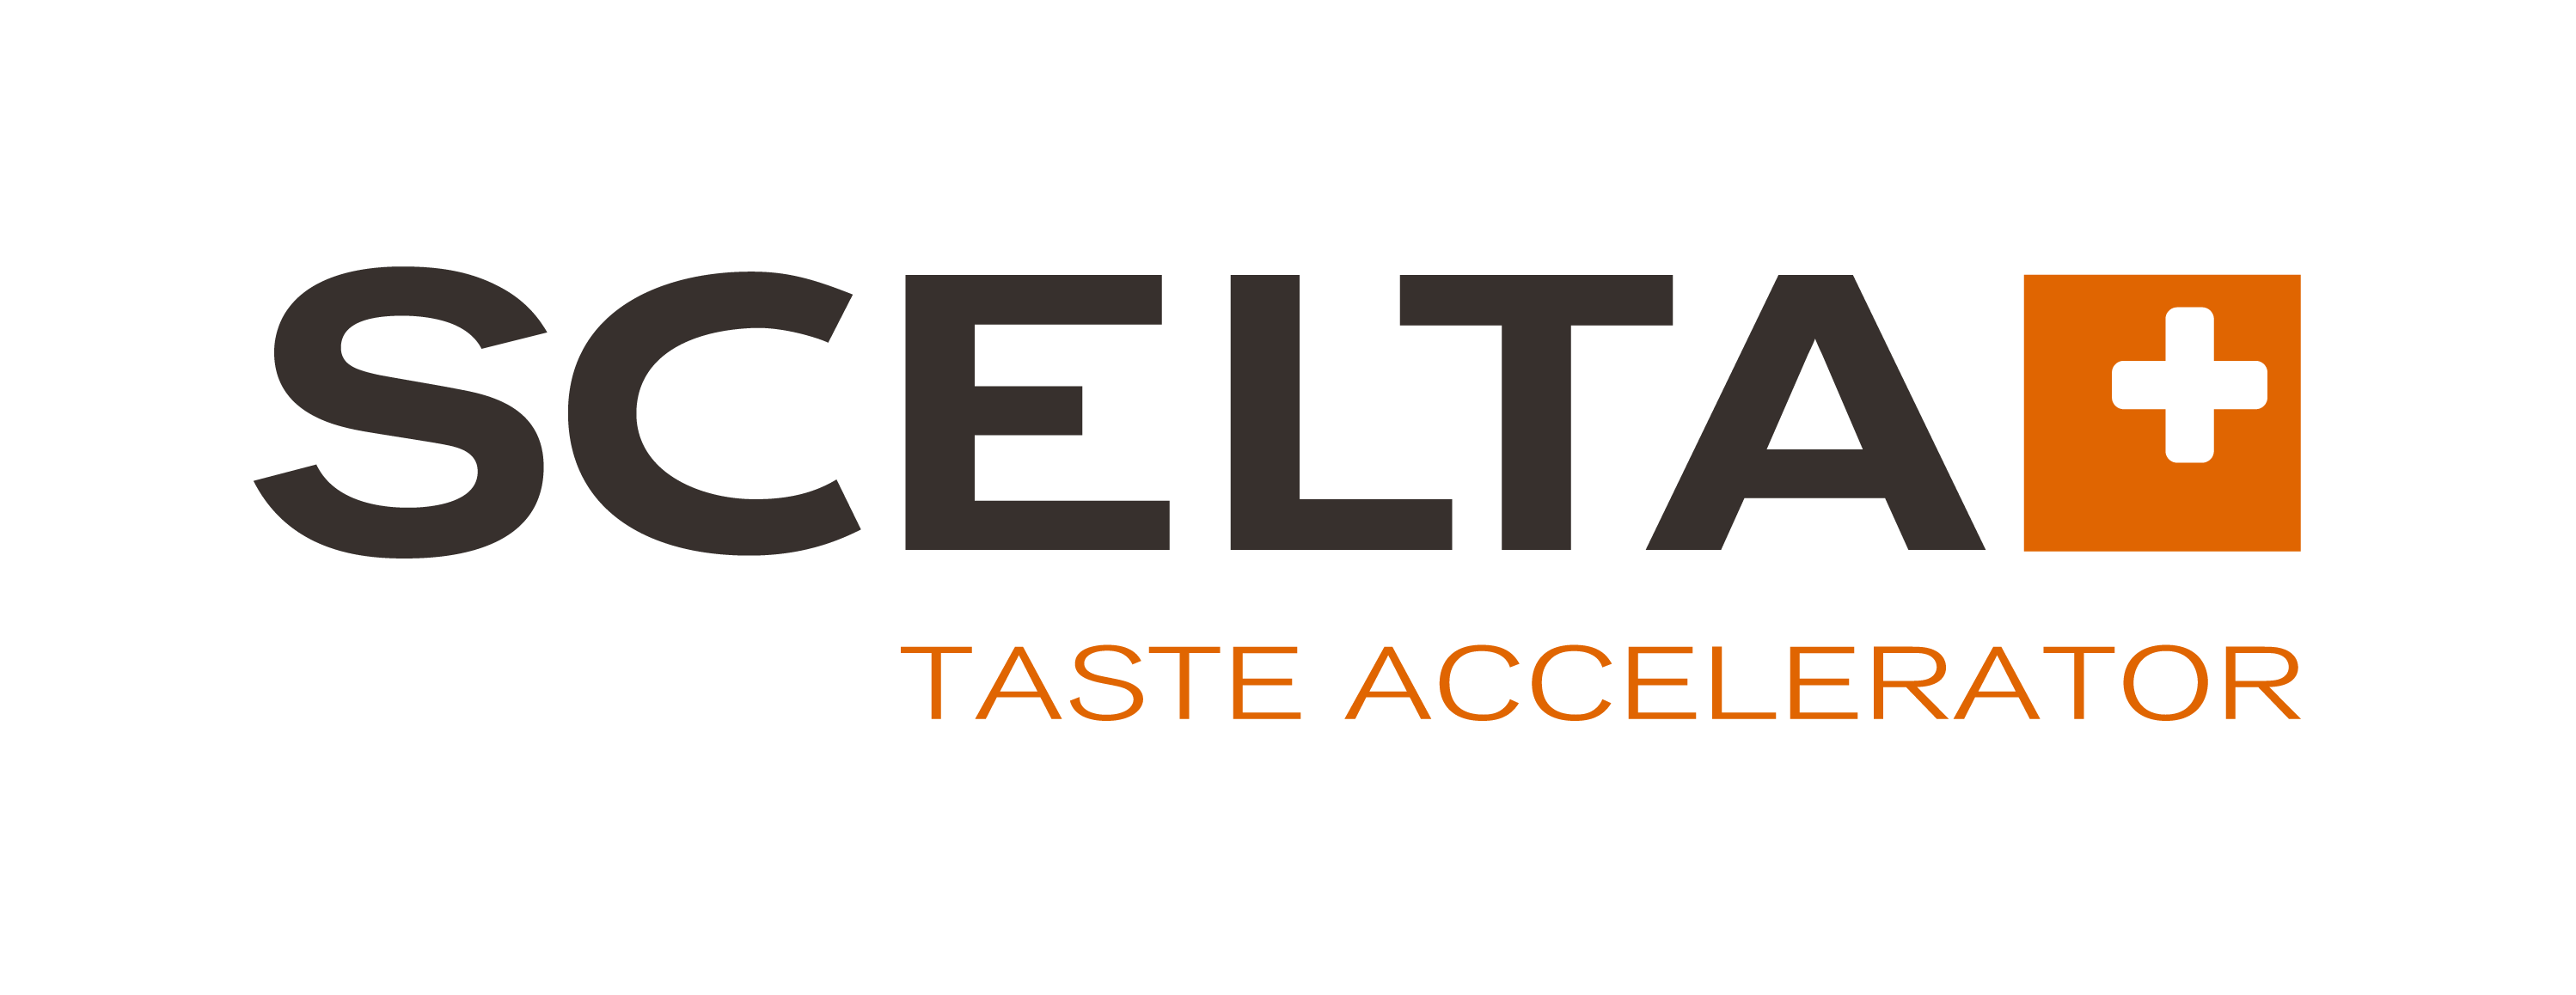 s-RGB SCELTA Taste accelerator logo (magic powder background) positif v4 288 ppi